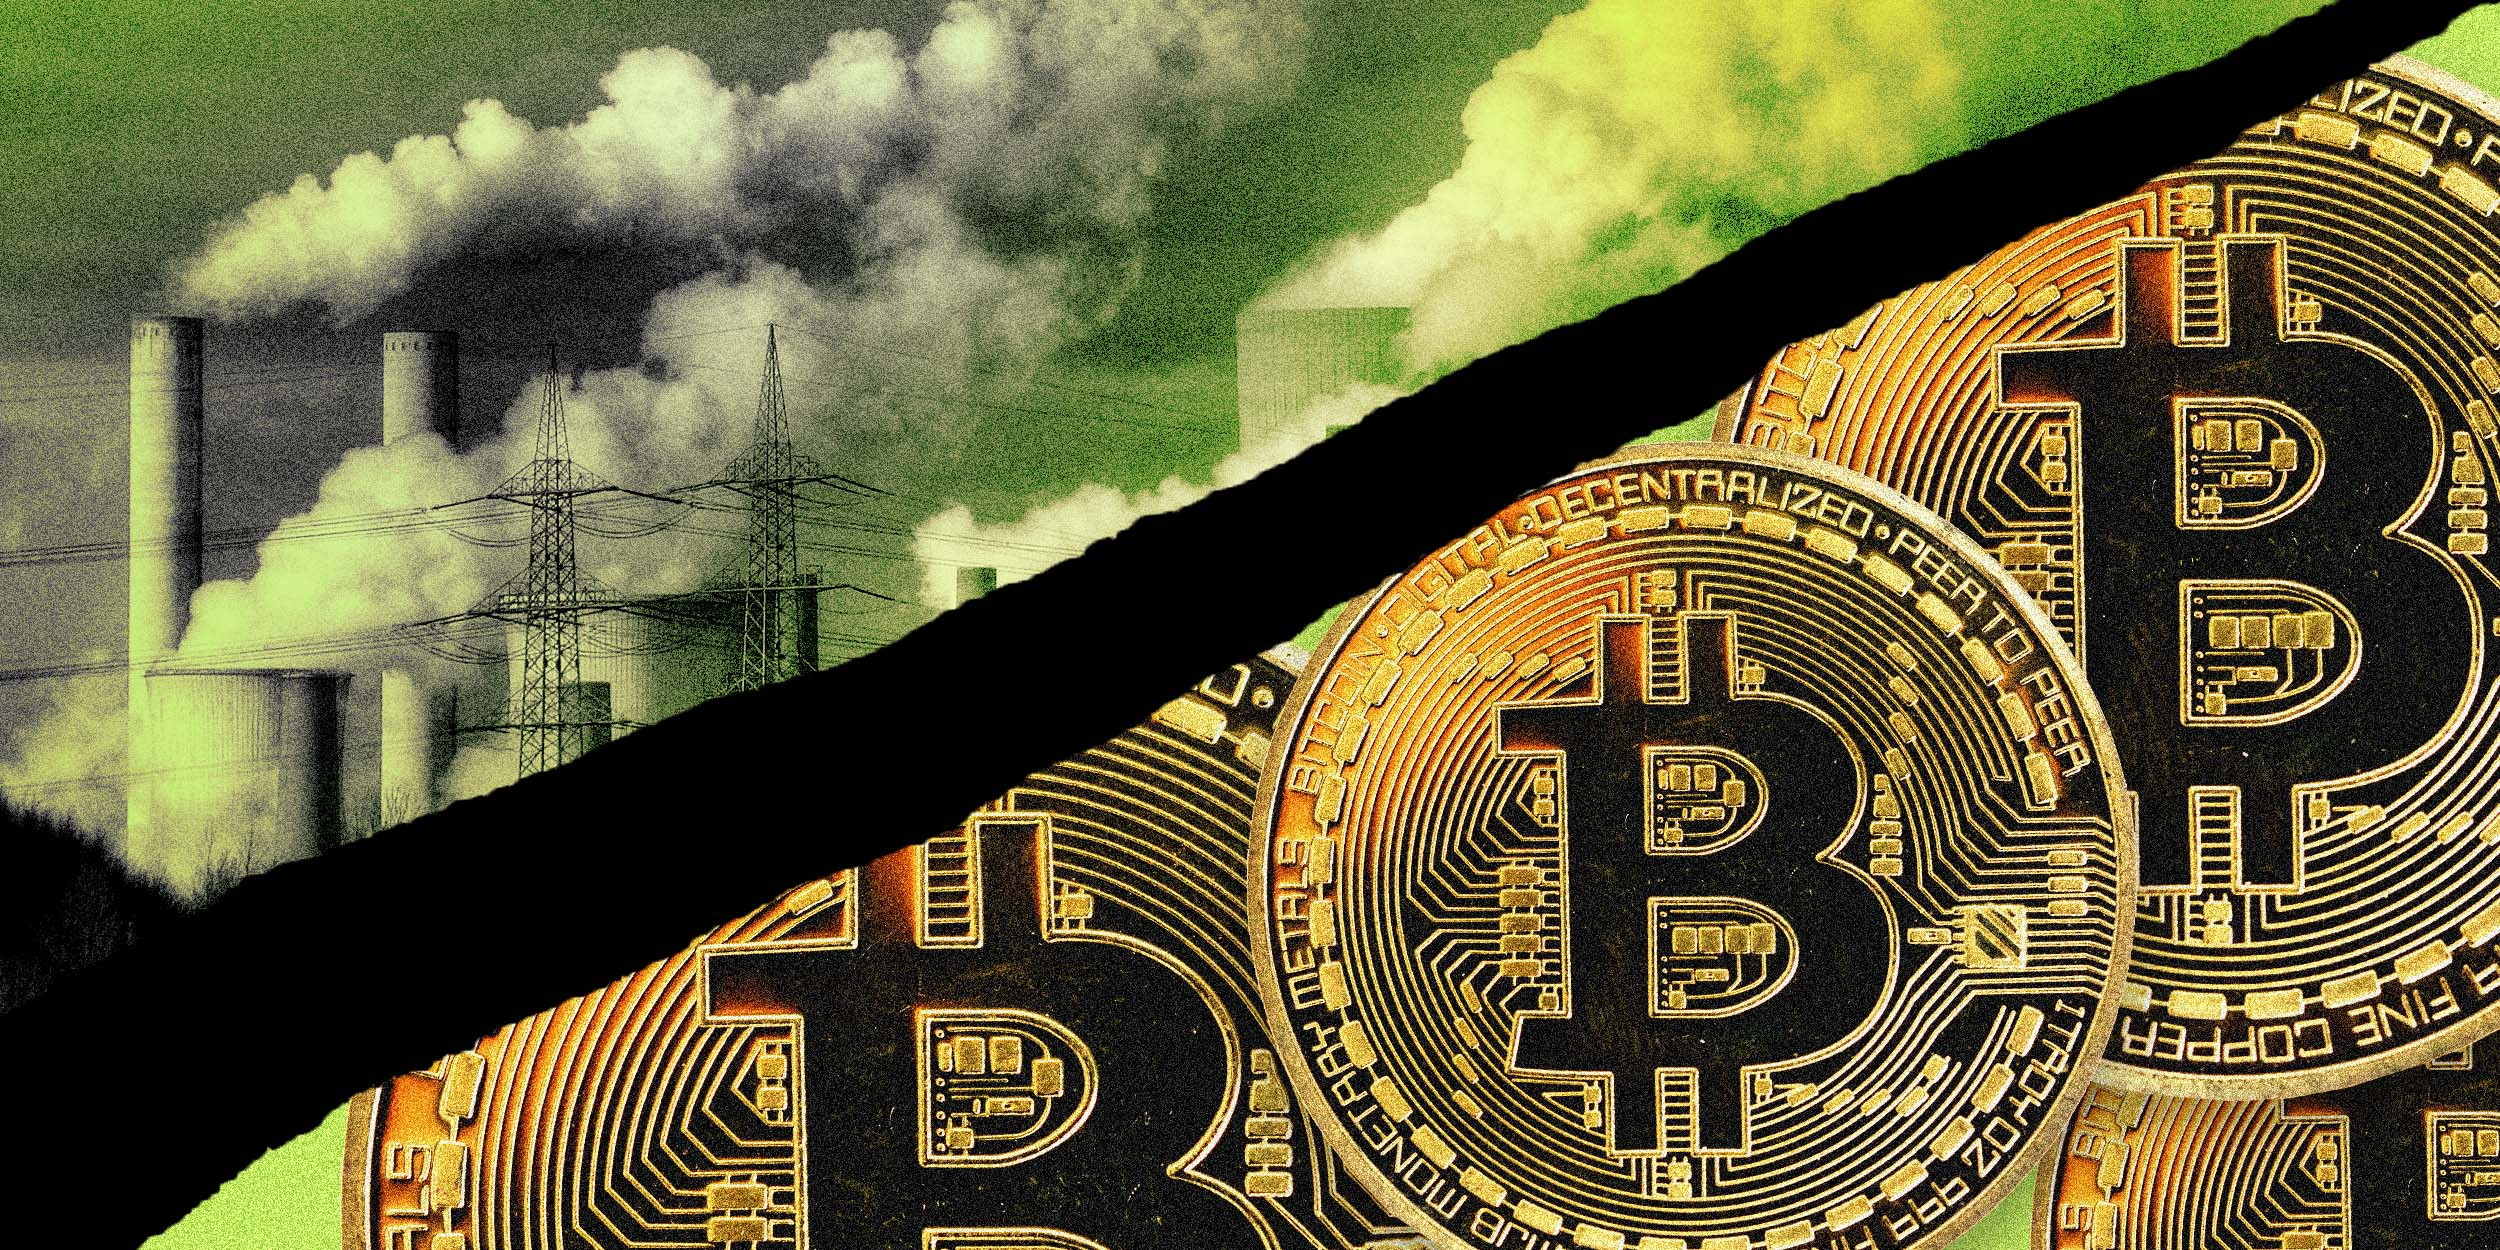 Fossil fuel firms find friends in Bitcoin mining